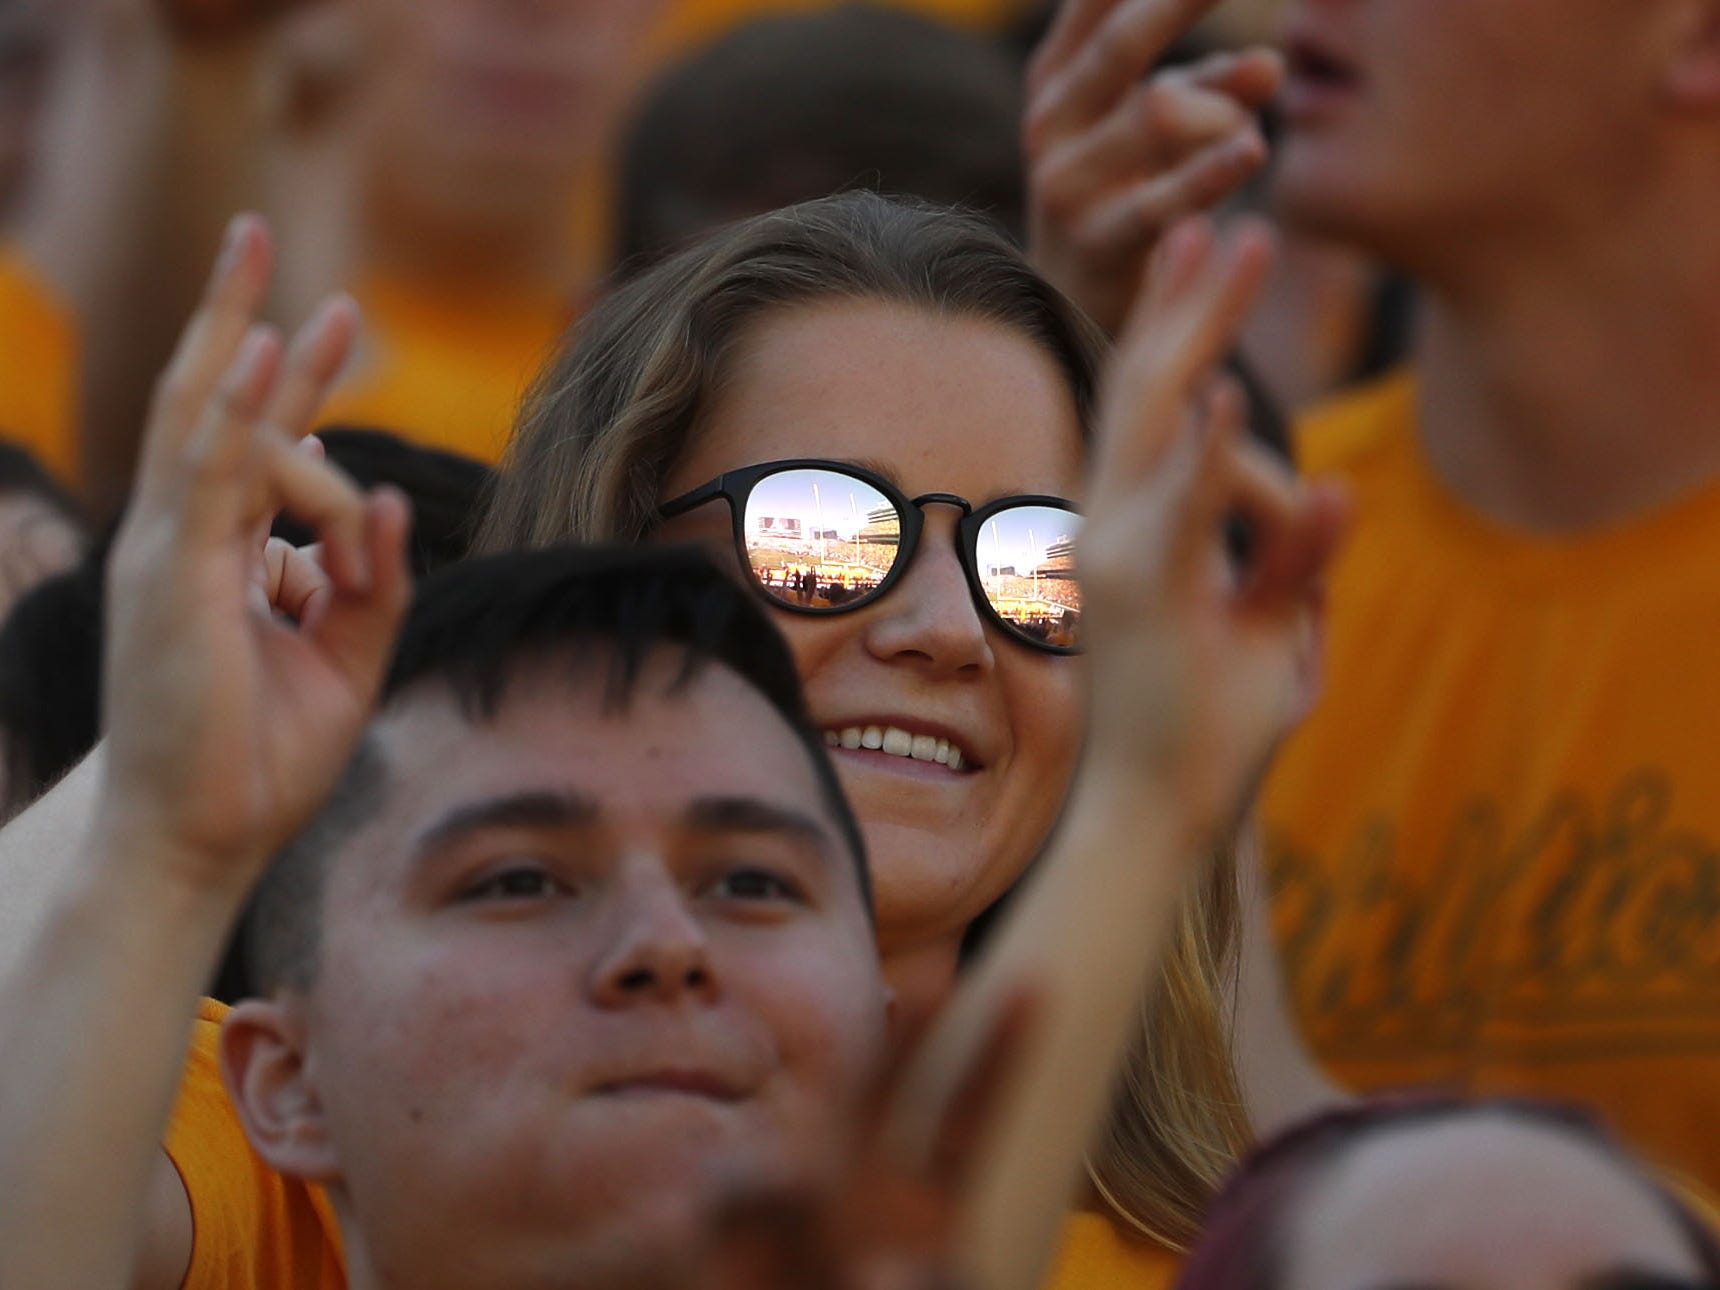 ASU fans throw up the forks for kickoff against UCLA during the first half at Sun Devil Stadium in Tempe, Ariz. on November 10, 2018.